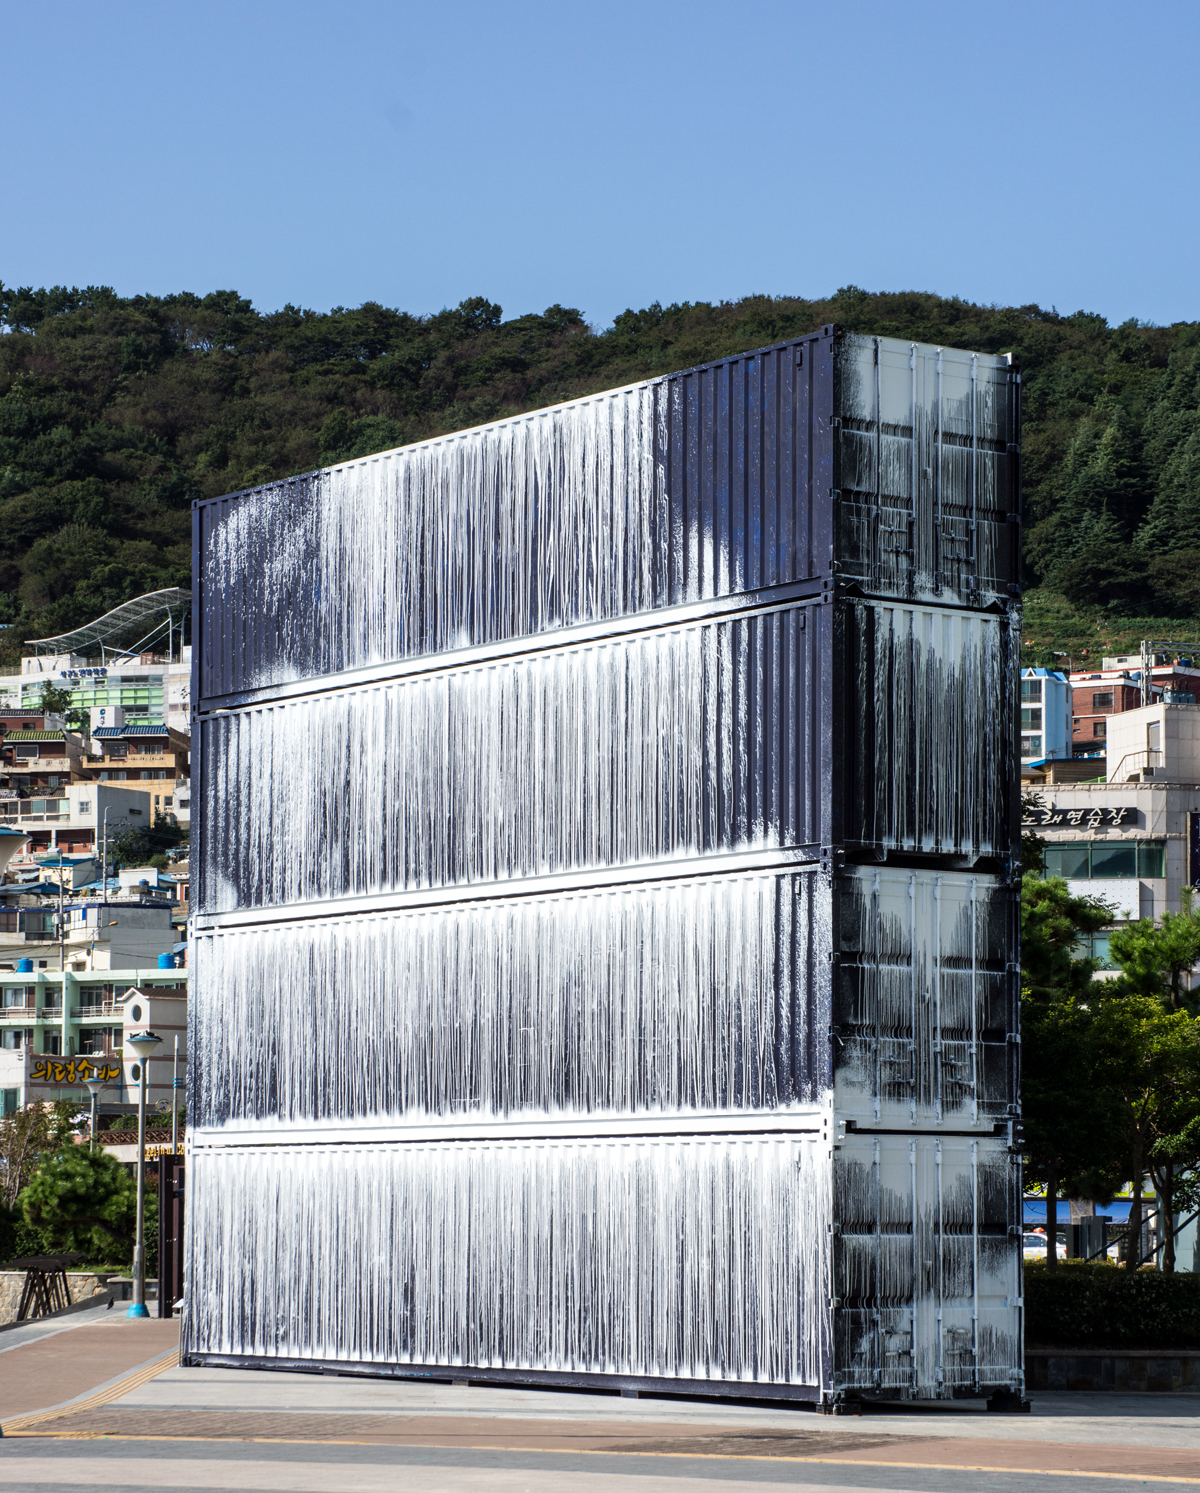 Untitled (Song-Do beach), 2013, acrylic on steel shipping containers, 2.4 × 12 × 9.6m